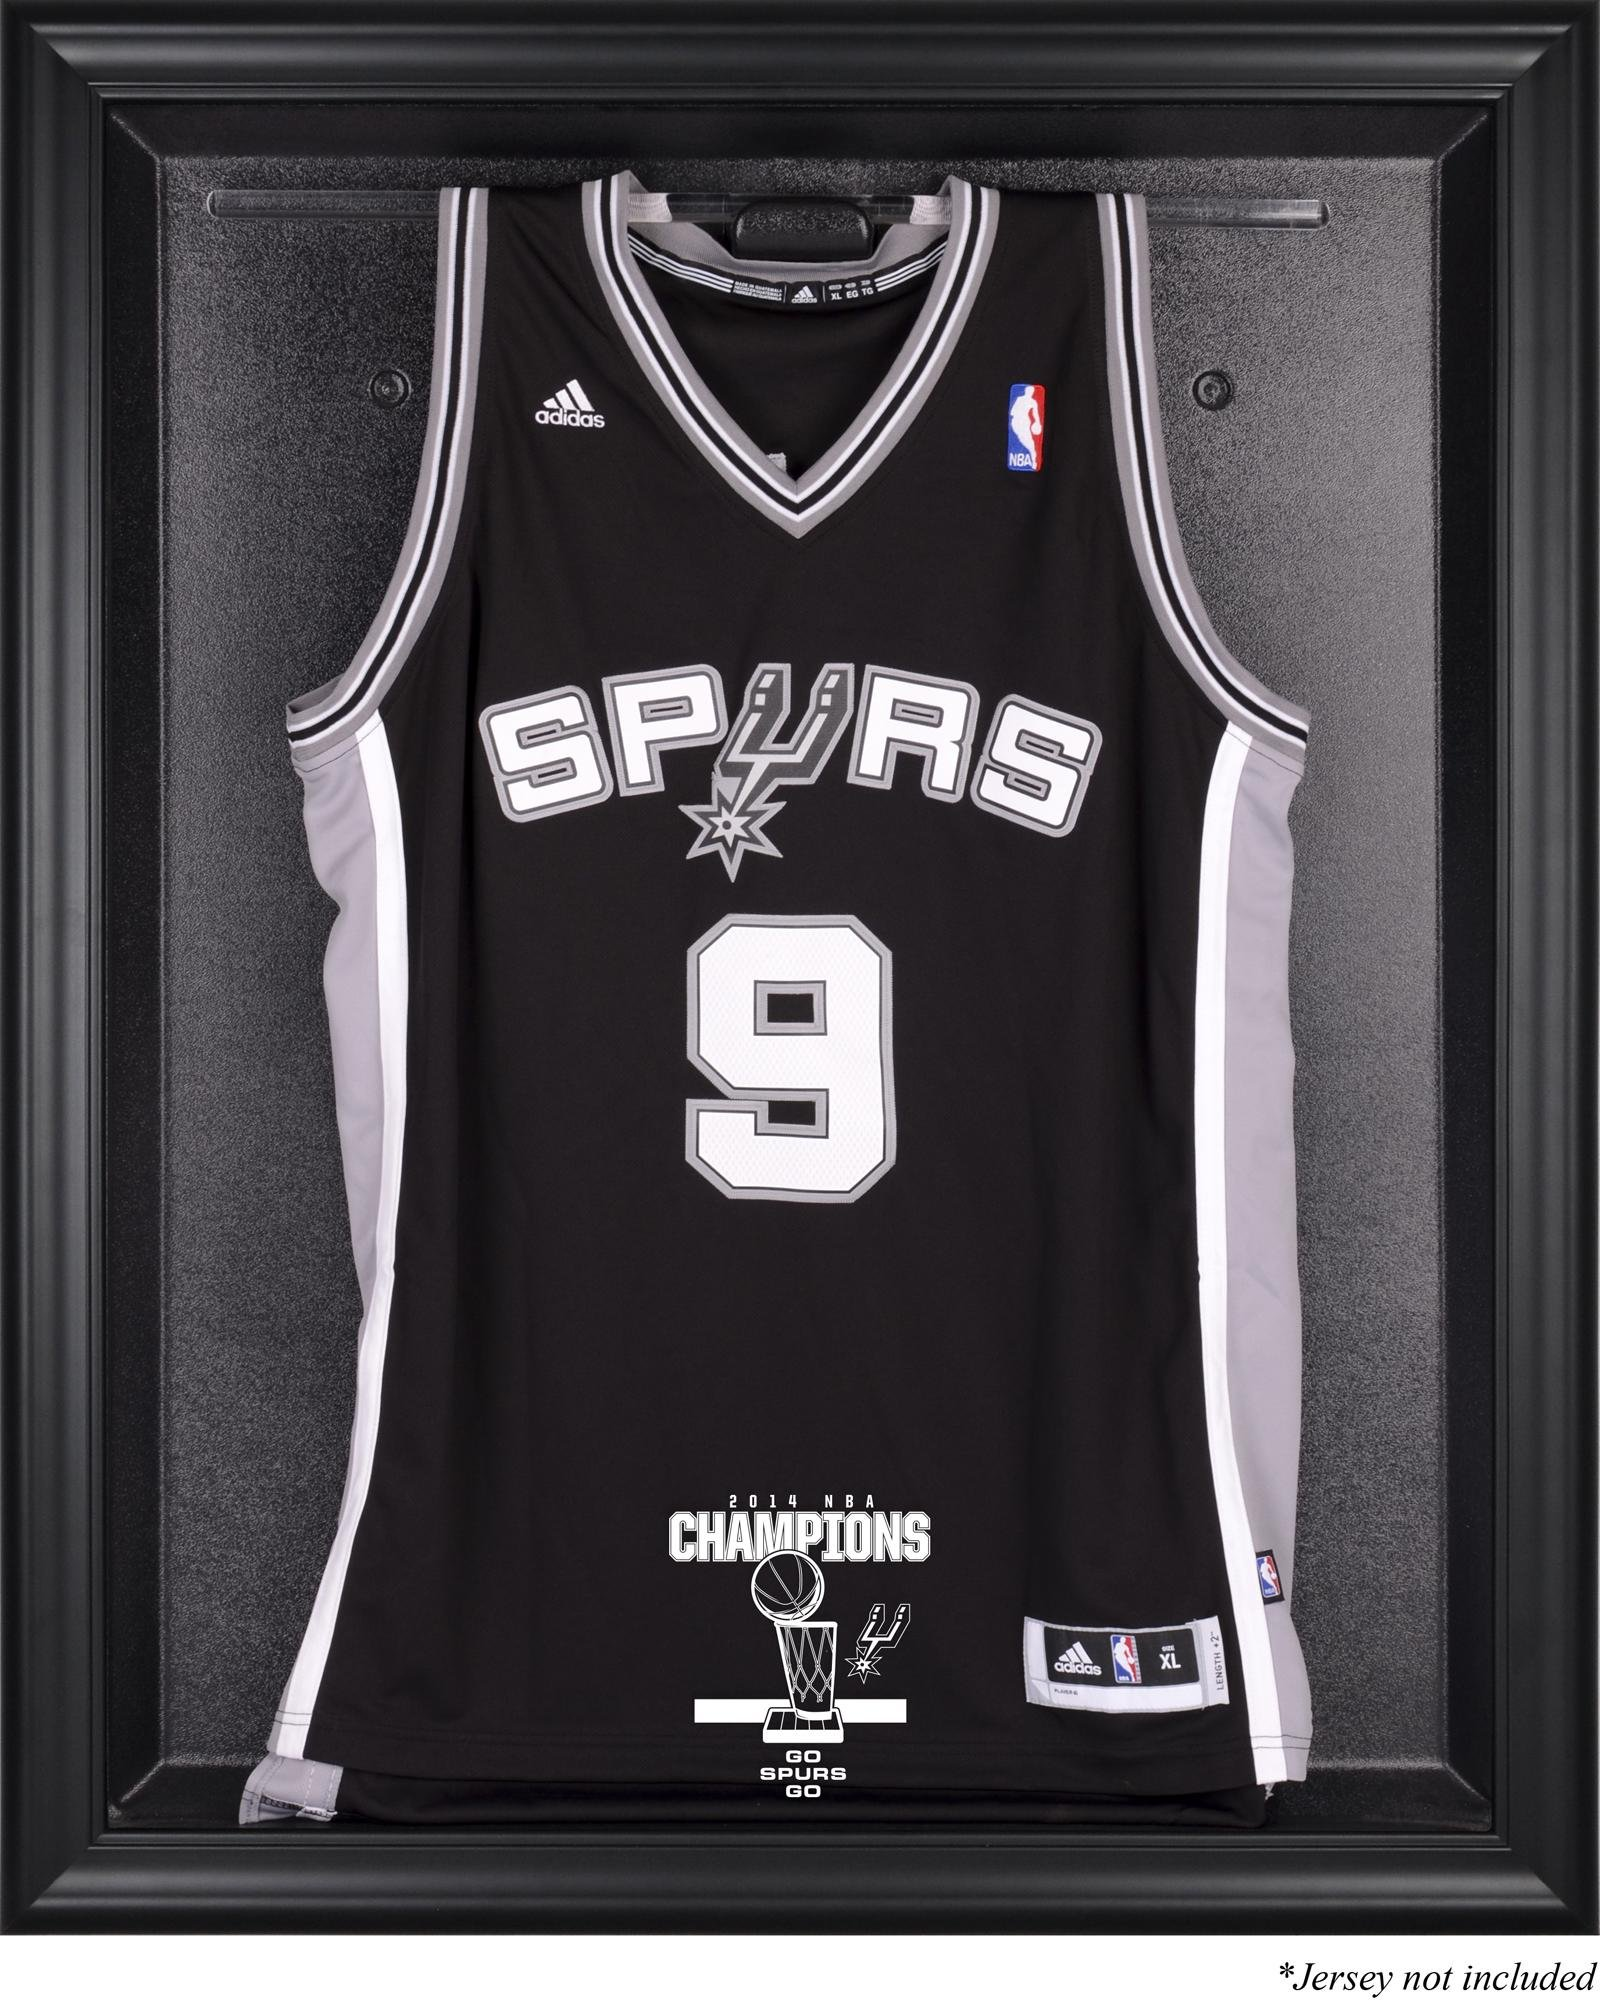 San Antonio Spurs 2014 NBA Champions Black Framed Logo Jersey Case - Fanatics Authentic Certified - Basketball Jersey Logo Display Cases